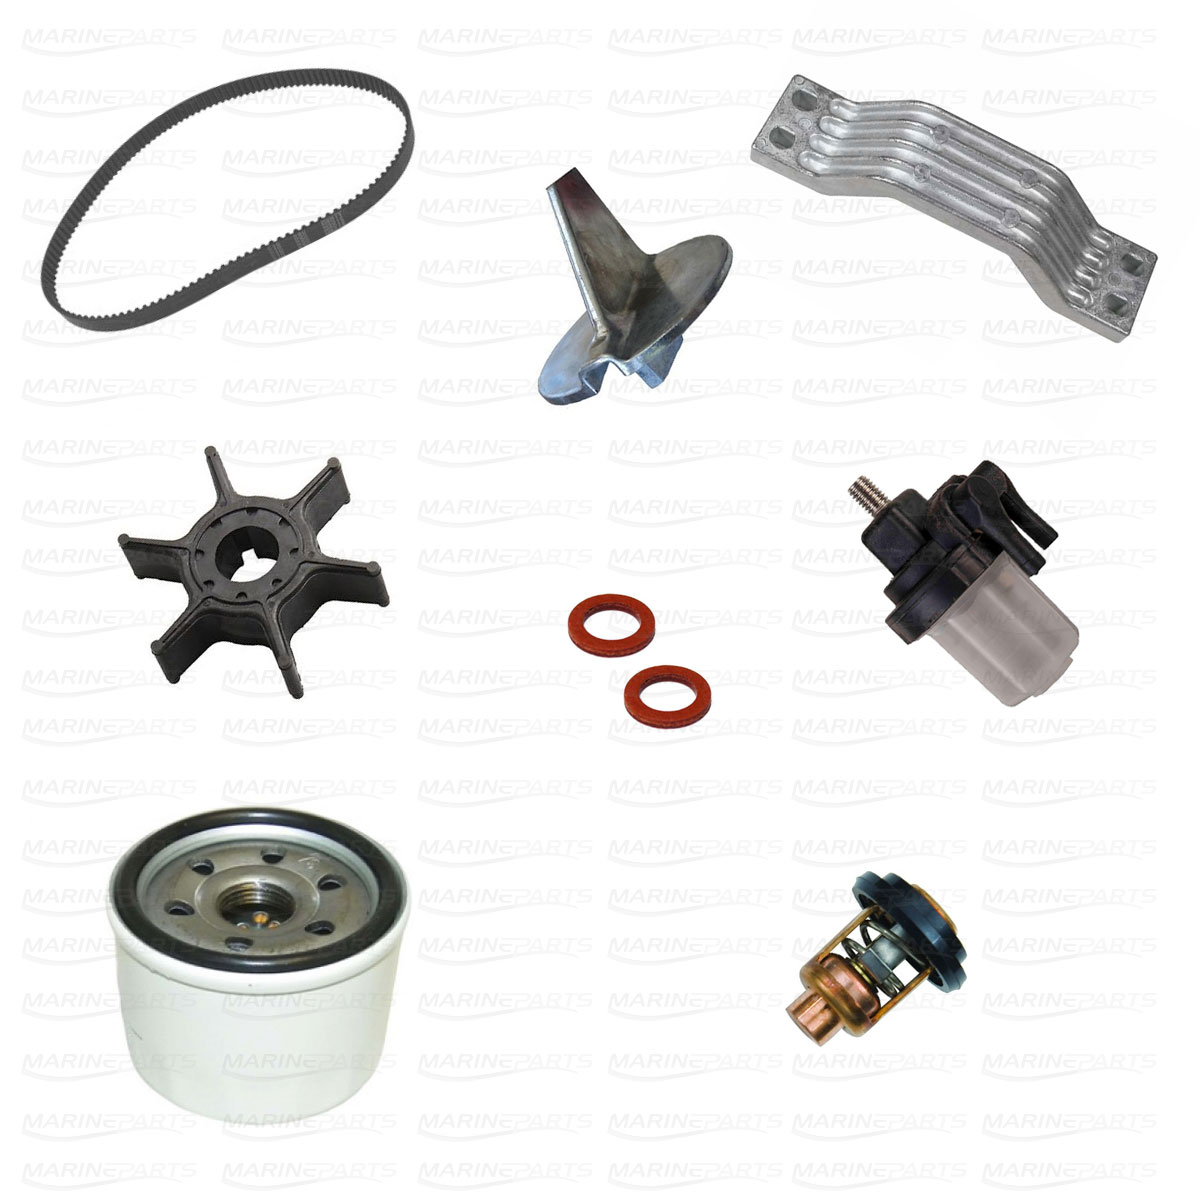 Service Kits for Yamaha 4-stroke models